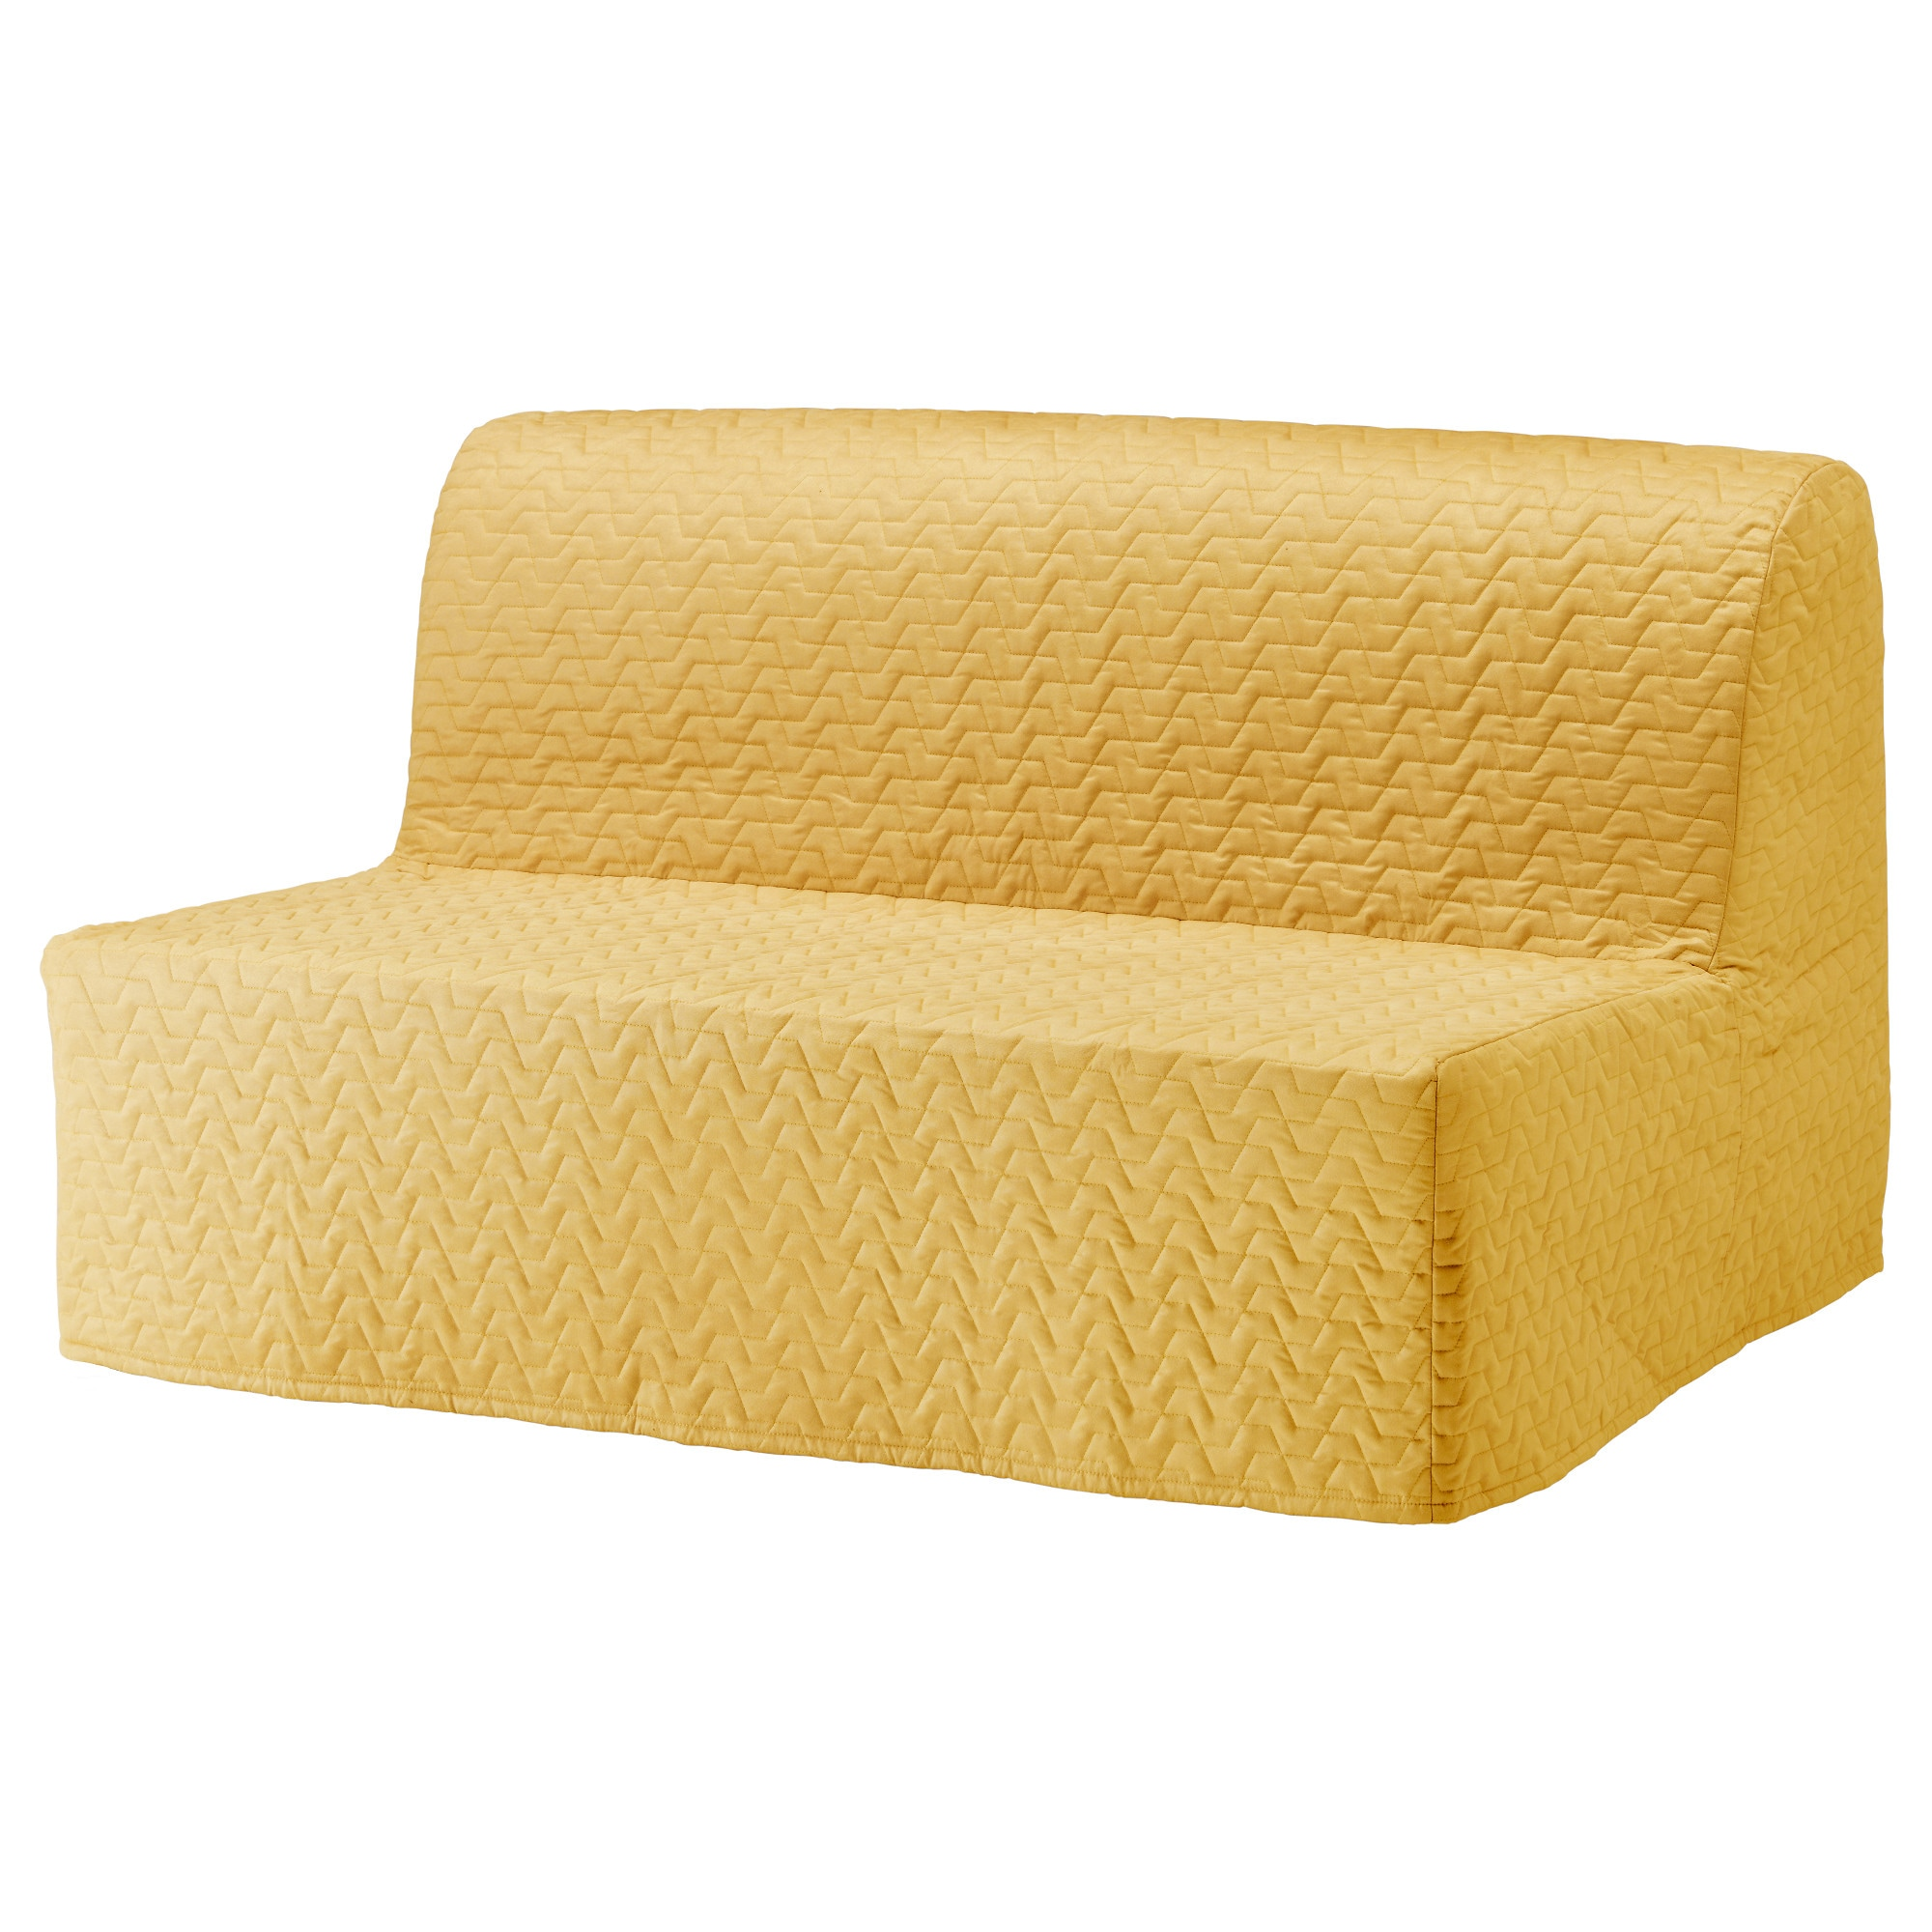 LYCKSELE Sleeper sofa slipcover Vallarum yellow IKEA